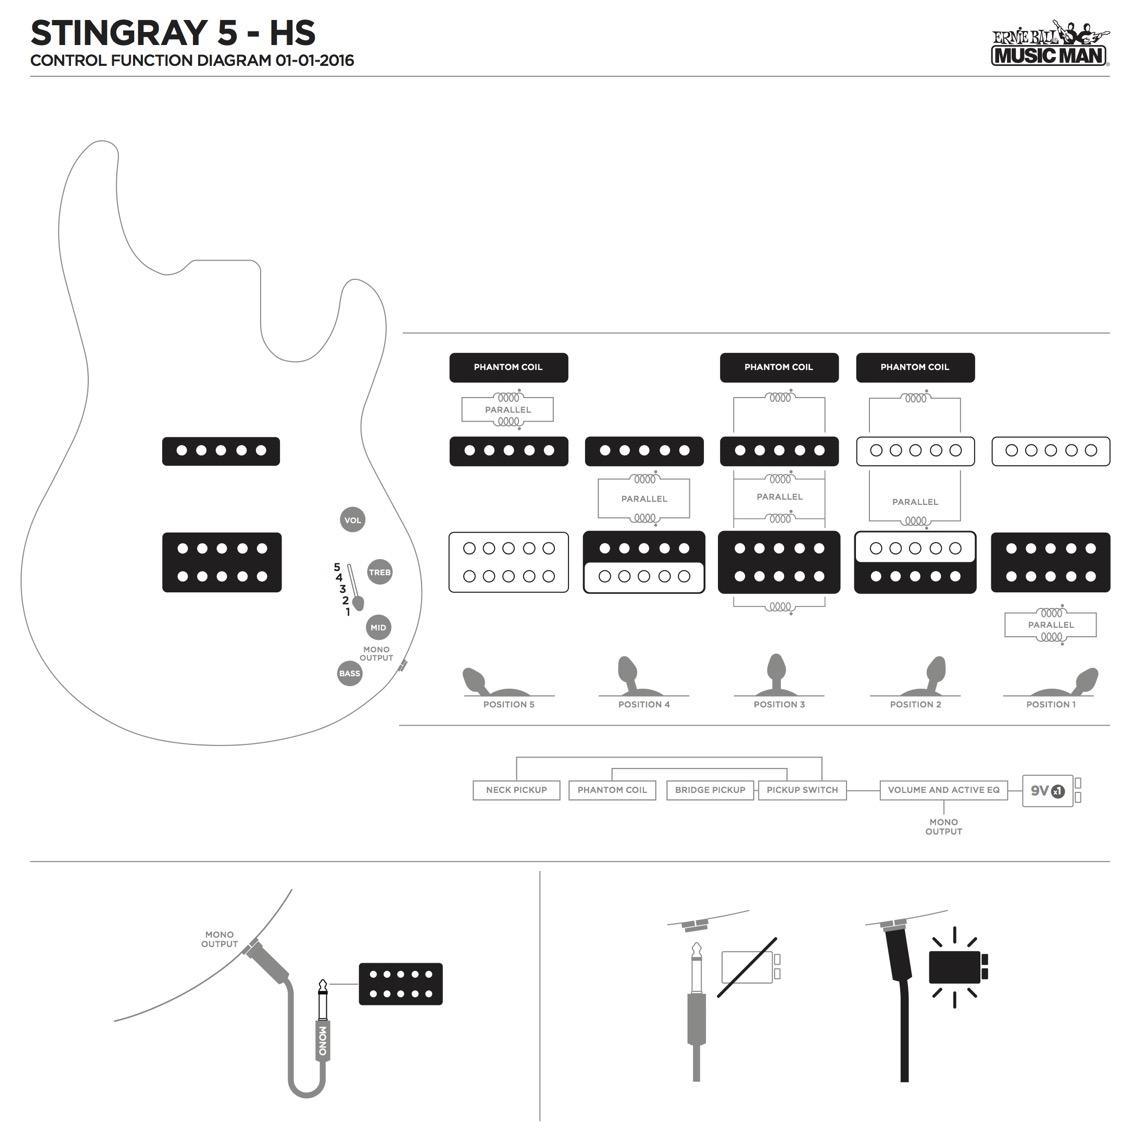 Stingray 5 Basses Ernie Ball Music Man 2014 Ultra Classic Wiring Diagram Pickup Configuration 2